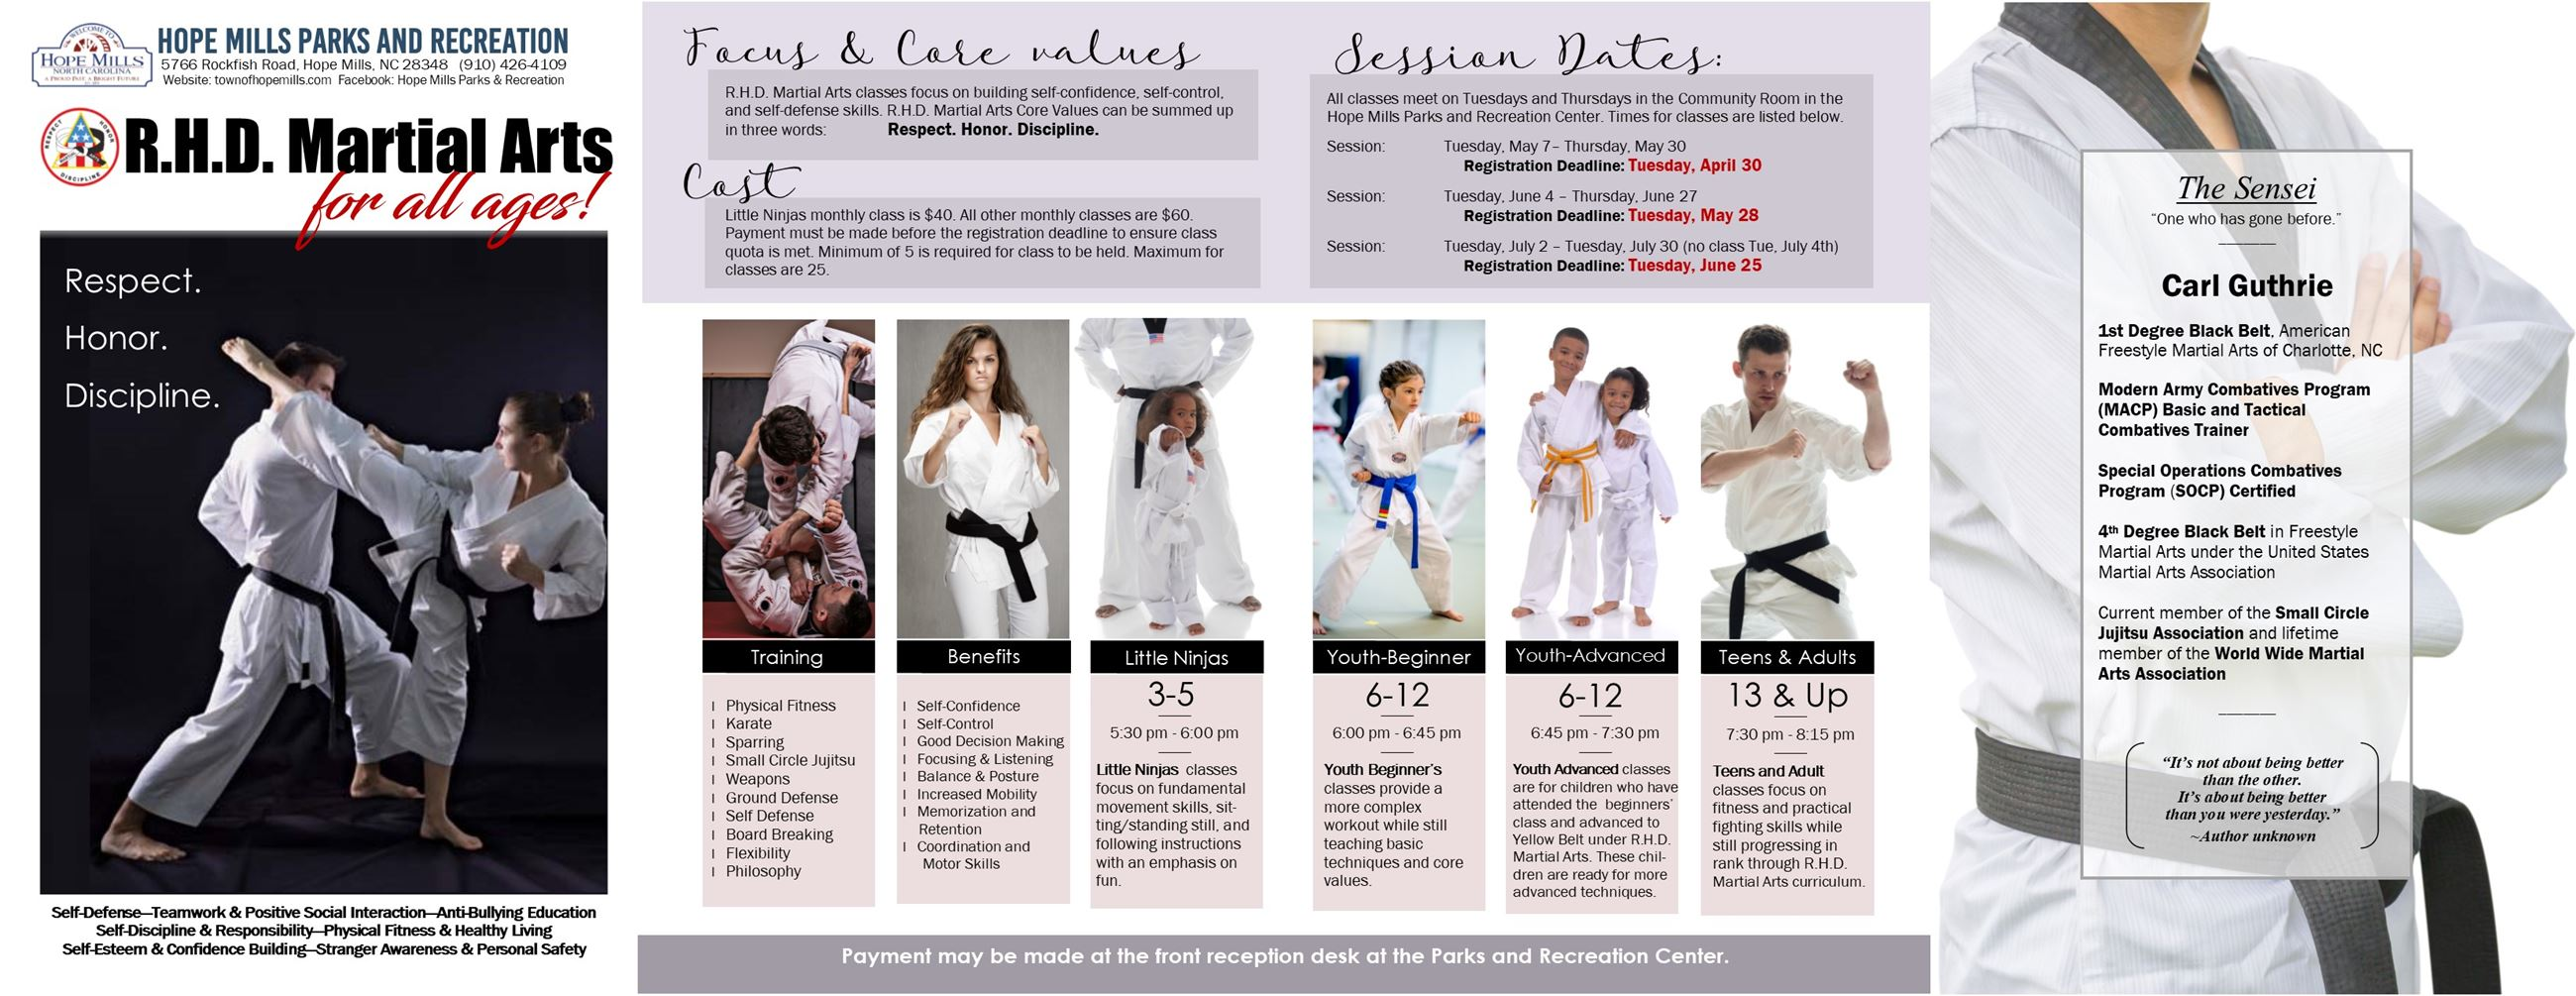 RHD Martial Arts Flyer 22 inch Electronic Layout